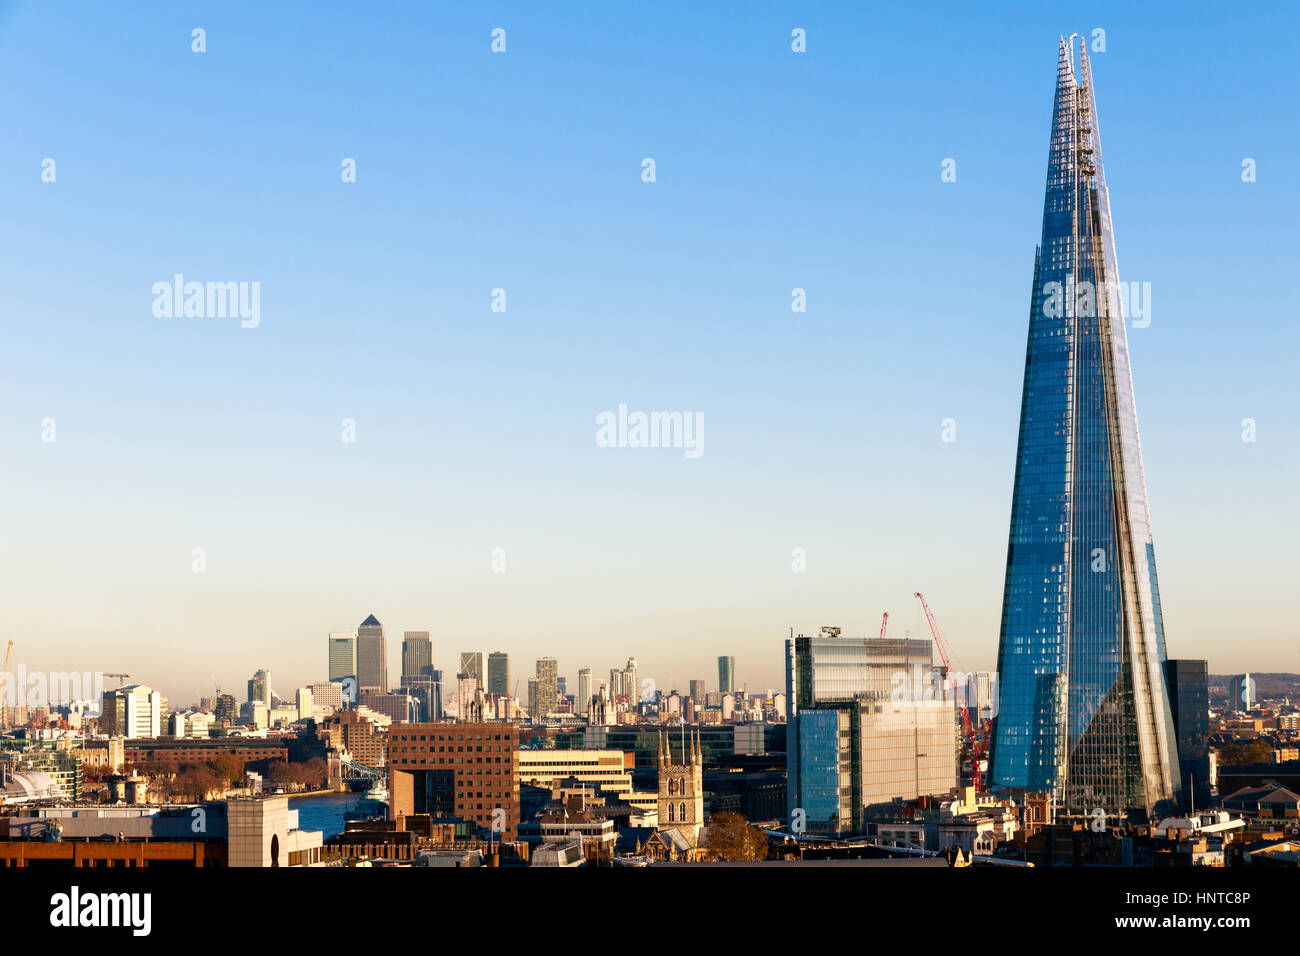 Financial district cityscape of London, including Canary Wharf and The Shard against a blue cloudless sky - Stock Image